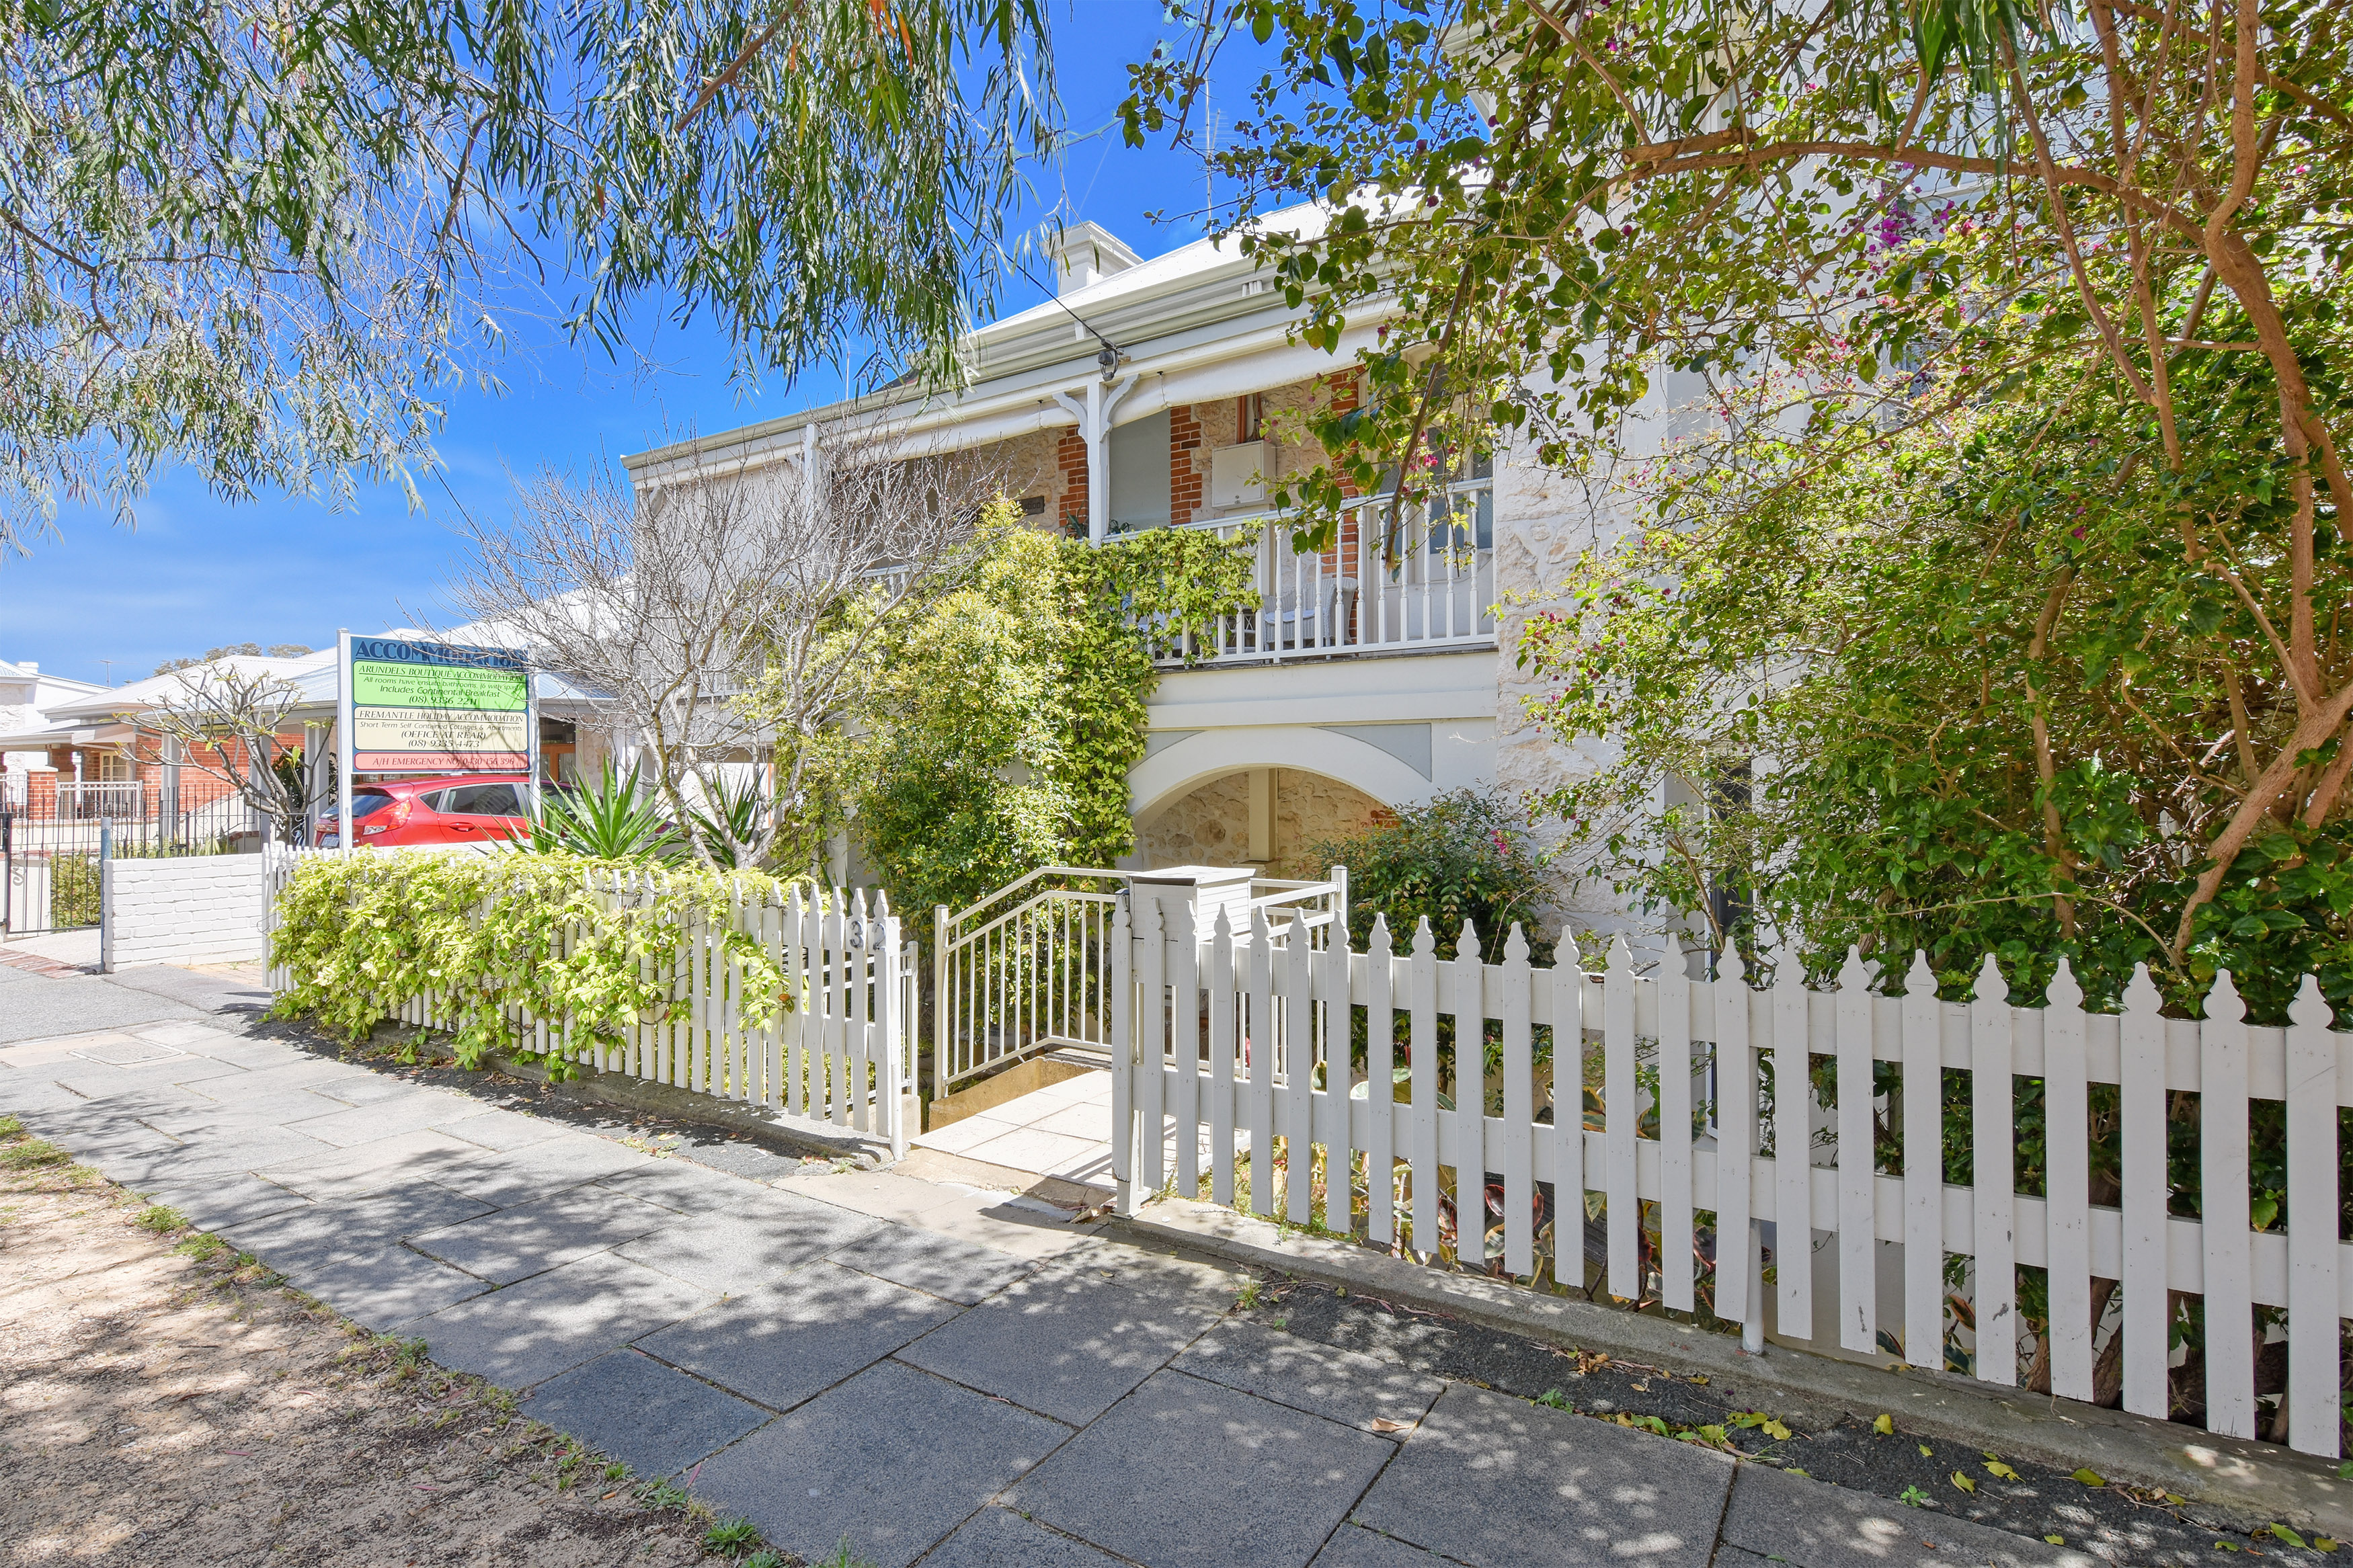 B&B Short Term Accomodation Going Concern Business and Related Property for Sale